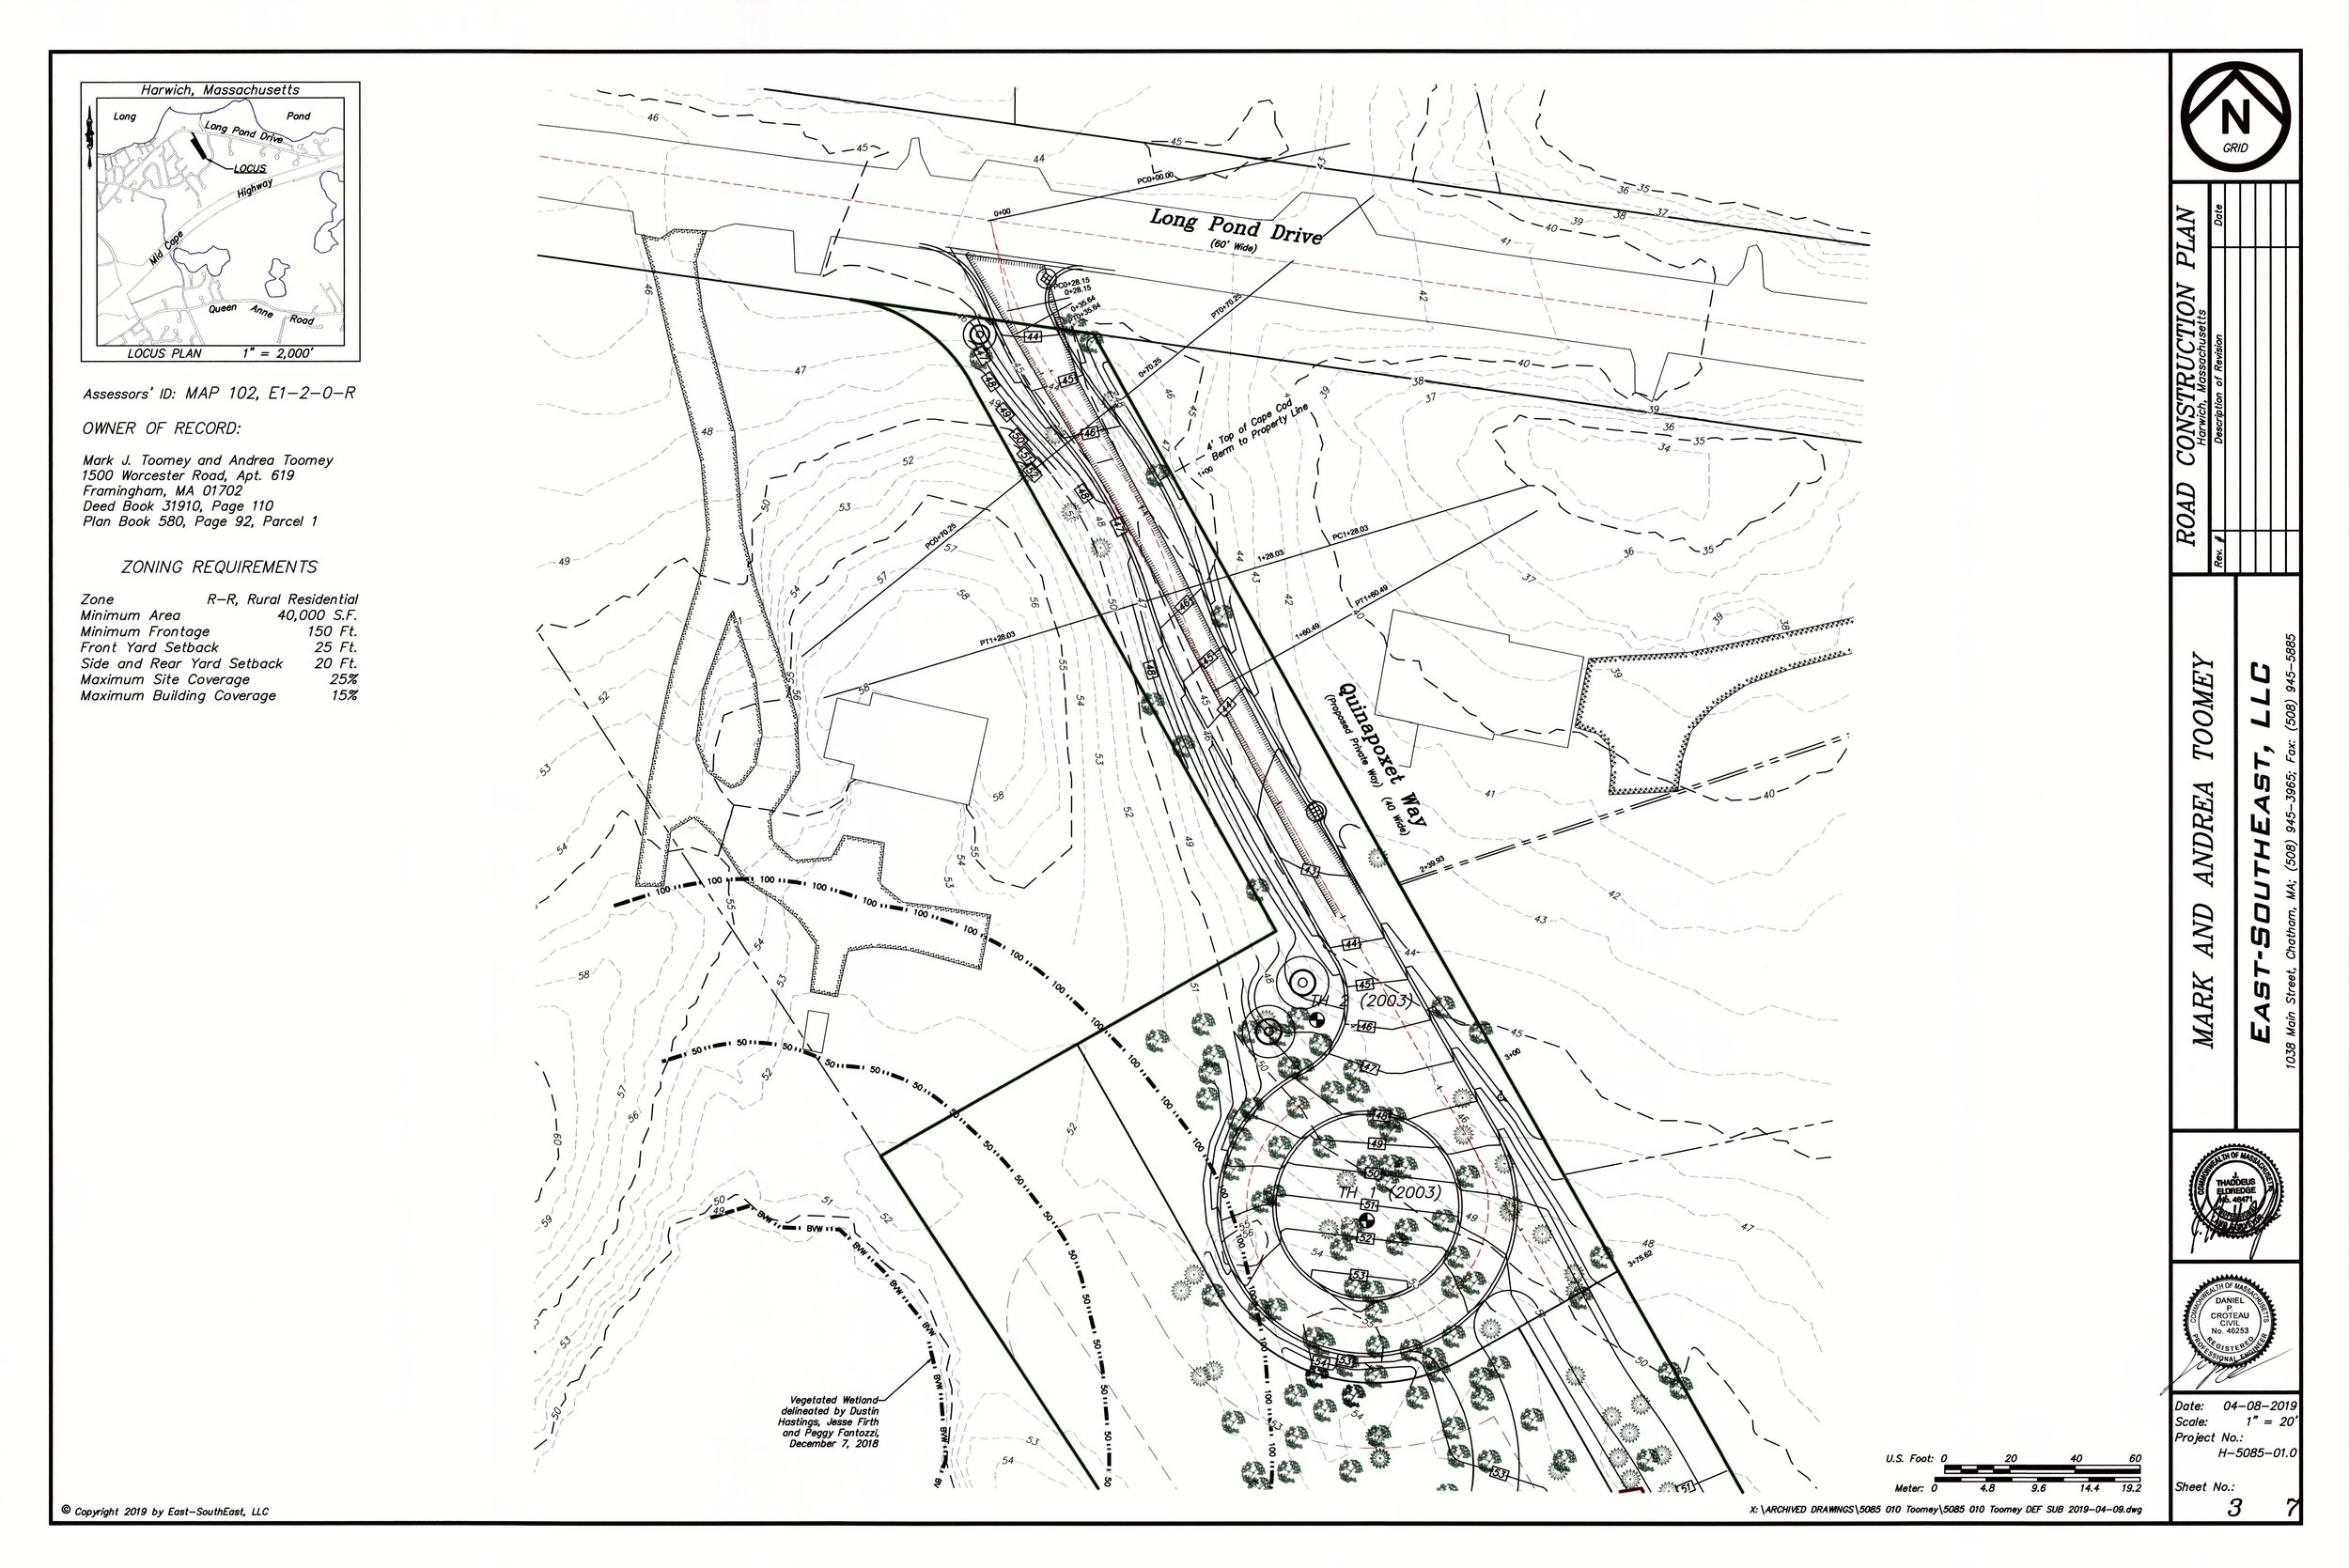 5085 010 Toomey DEF SUB 2019-04-09-3 Road Construction Plan STAMPED.jpg